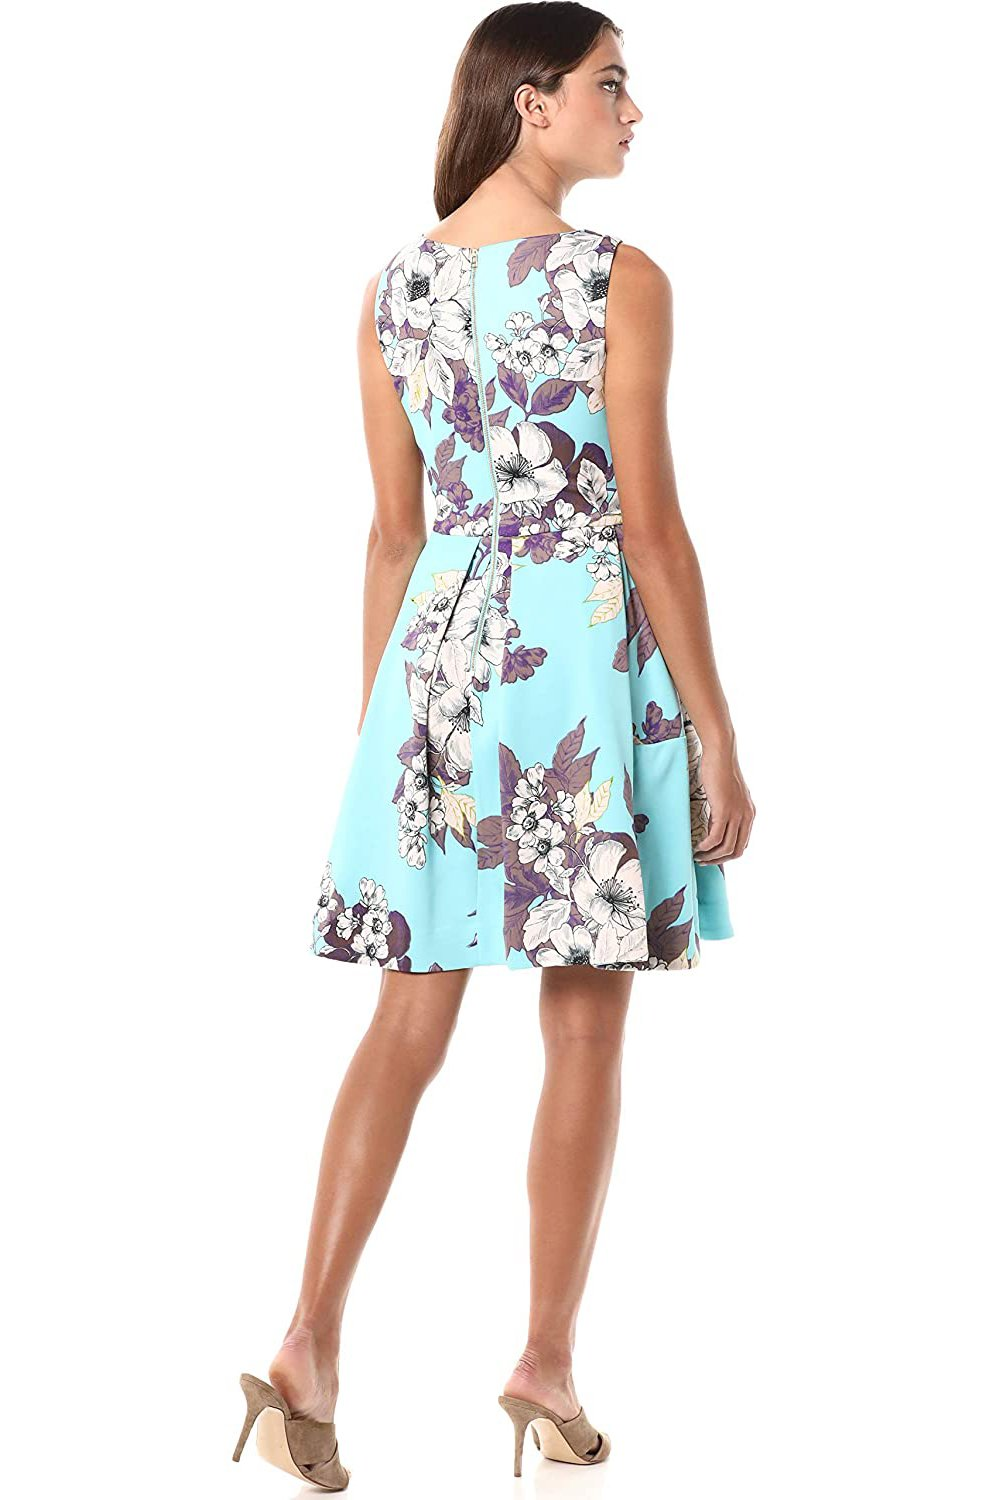 Taylor - 1308M Floral Print Scuba Pleated A-line Dress In Green and Multi-Color